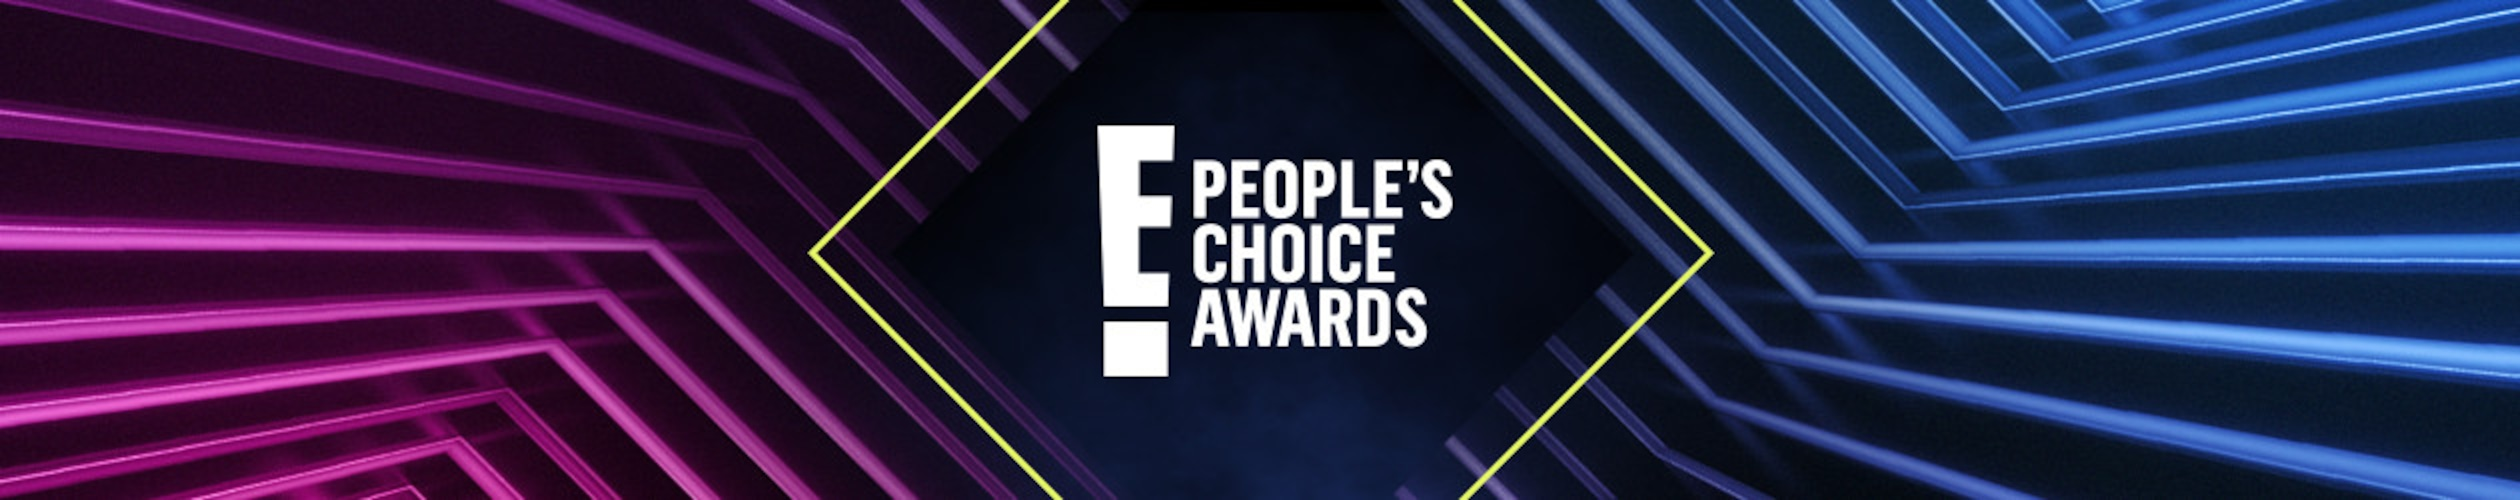 2019 People's Choice Awards Show Page Assets